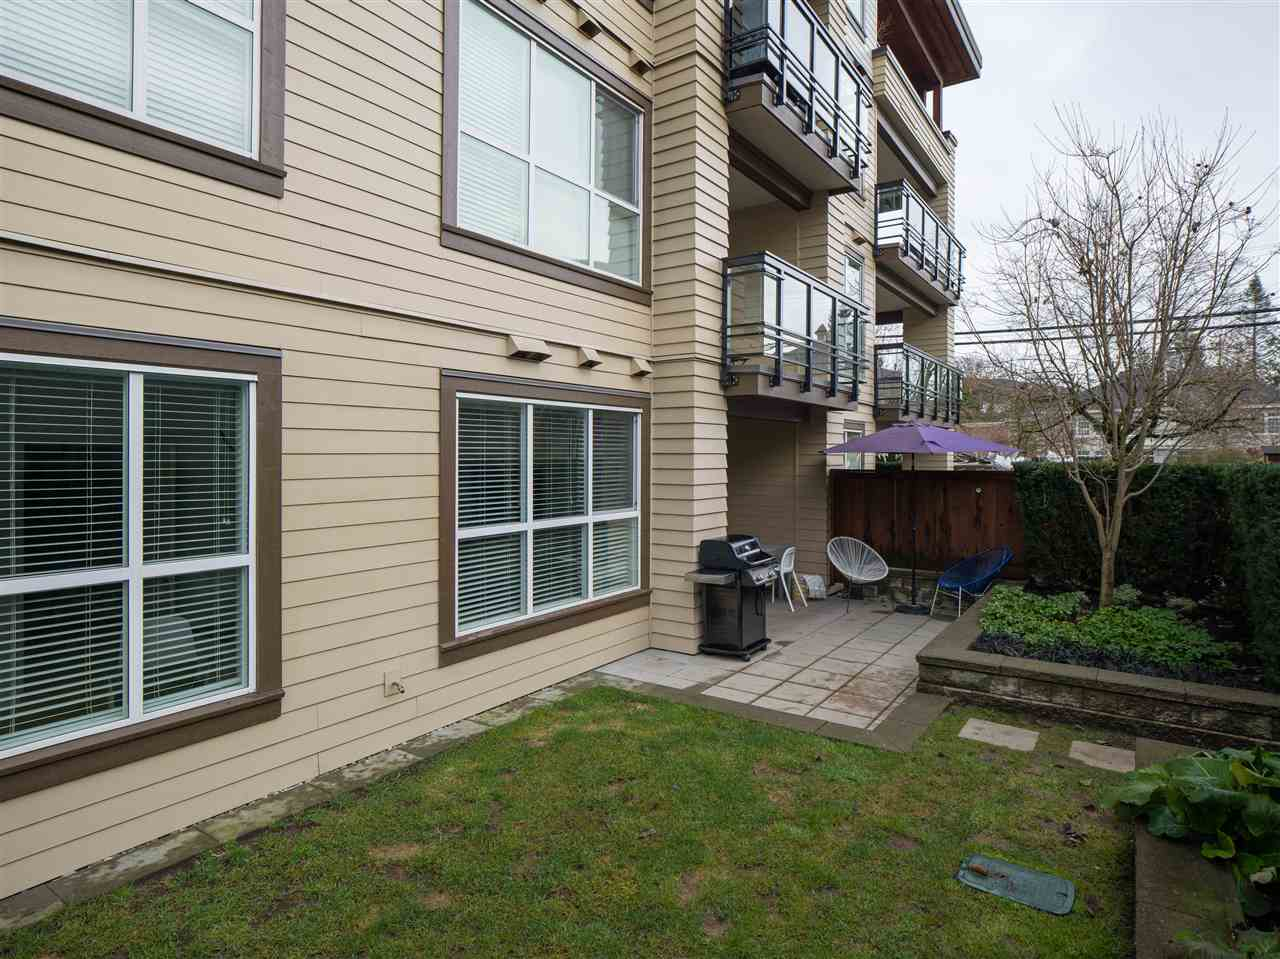 101 3205 MOUNTAIN HIGHWAY - Lynn Valley Apartment/Condo for sale, 2 Bedrooms (R2527517) - #26